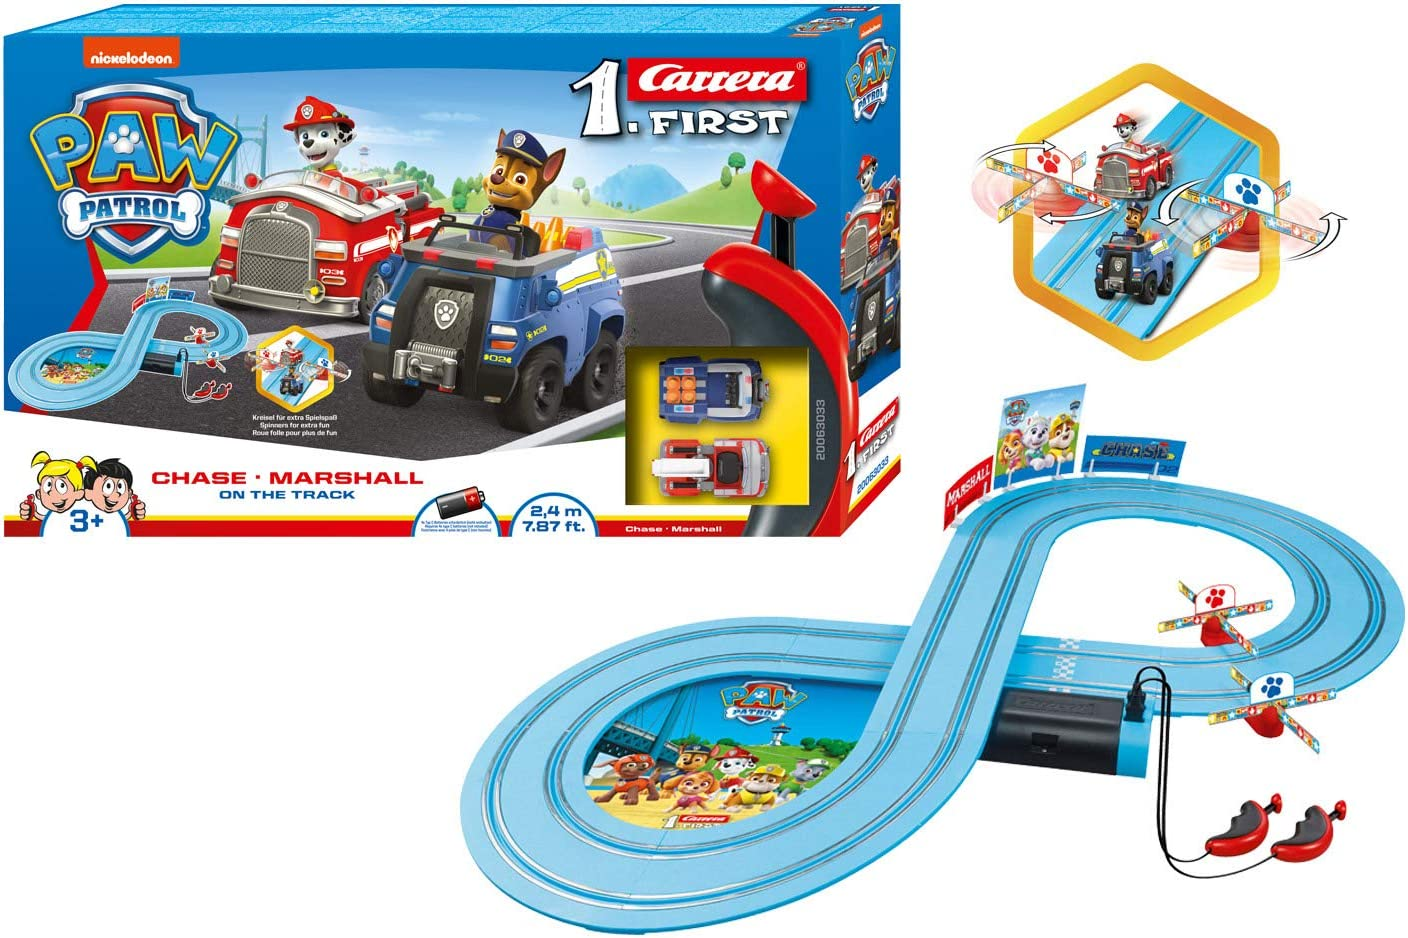 Nickelodeon Carrera First Paw Patrol Chase vs Marshall 1:50 Scale Racing Track